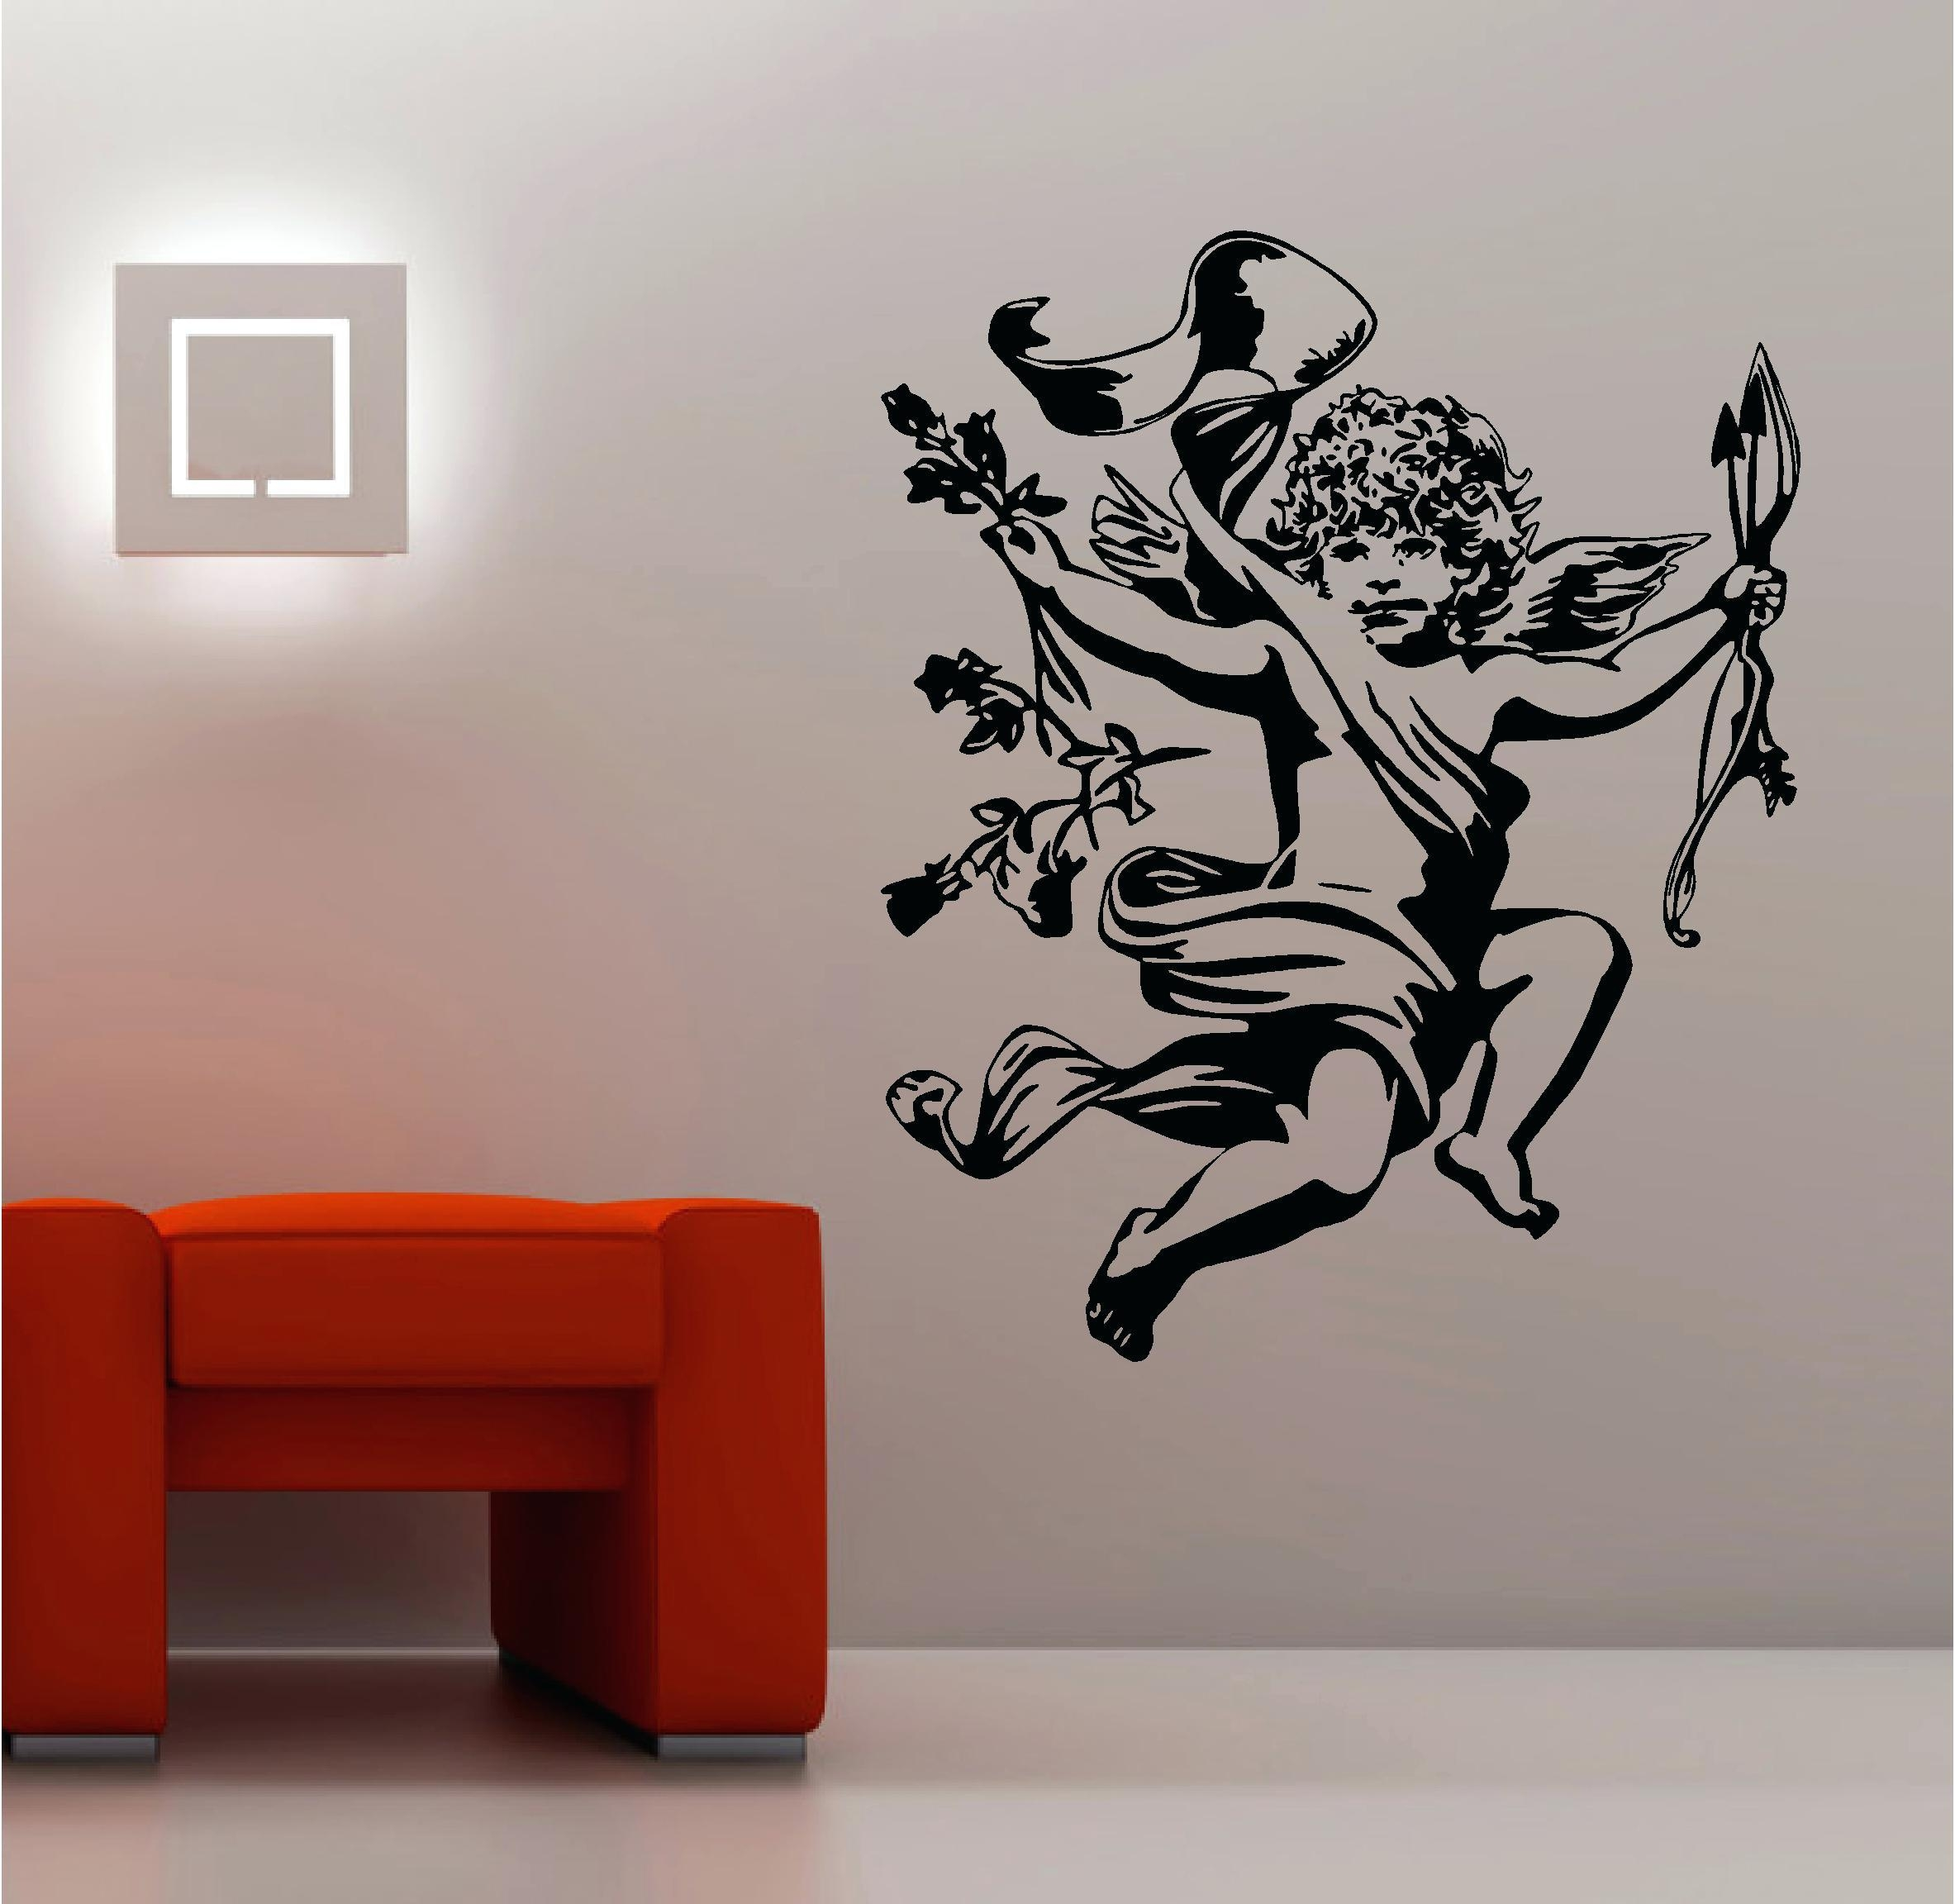 Articles With Angel Wings Wall Art For Sale Tag: Angel Wings Wall Intended For Angel Wings Sculpture Plaque Wall Art (View 17 of 20)